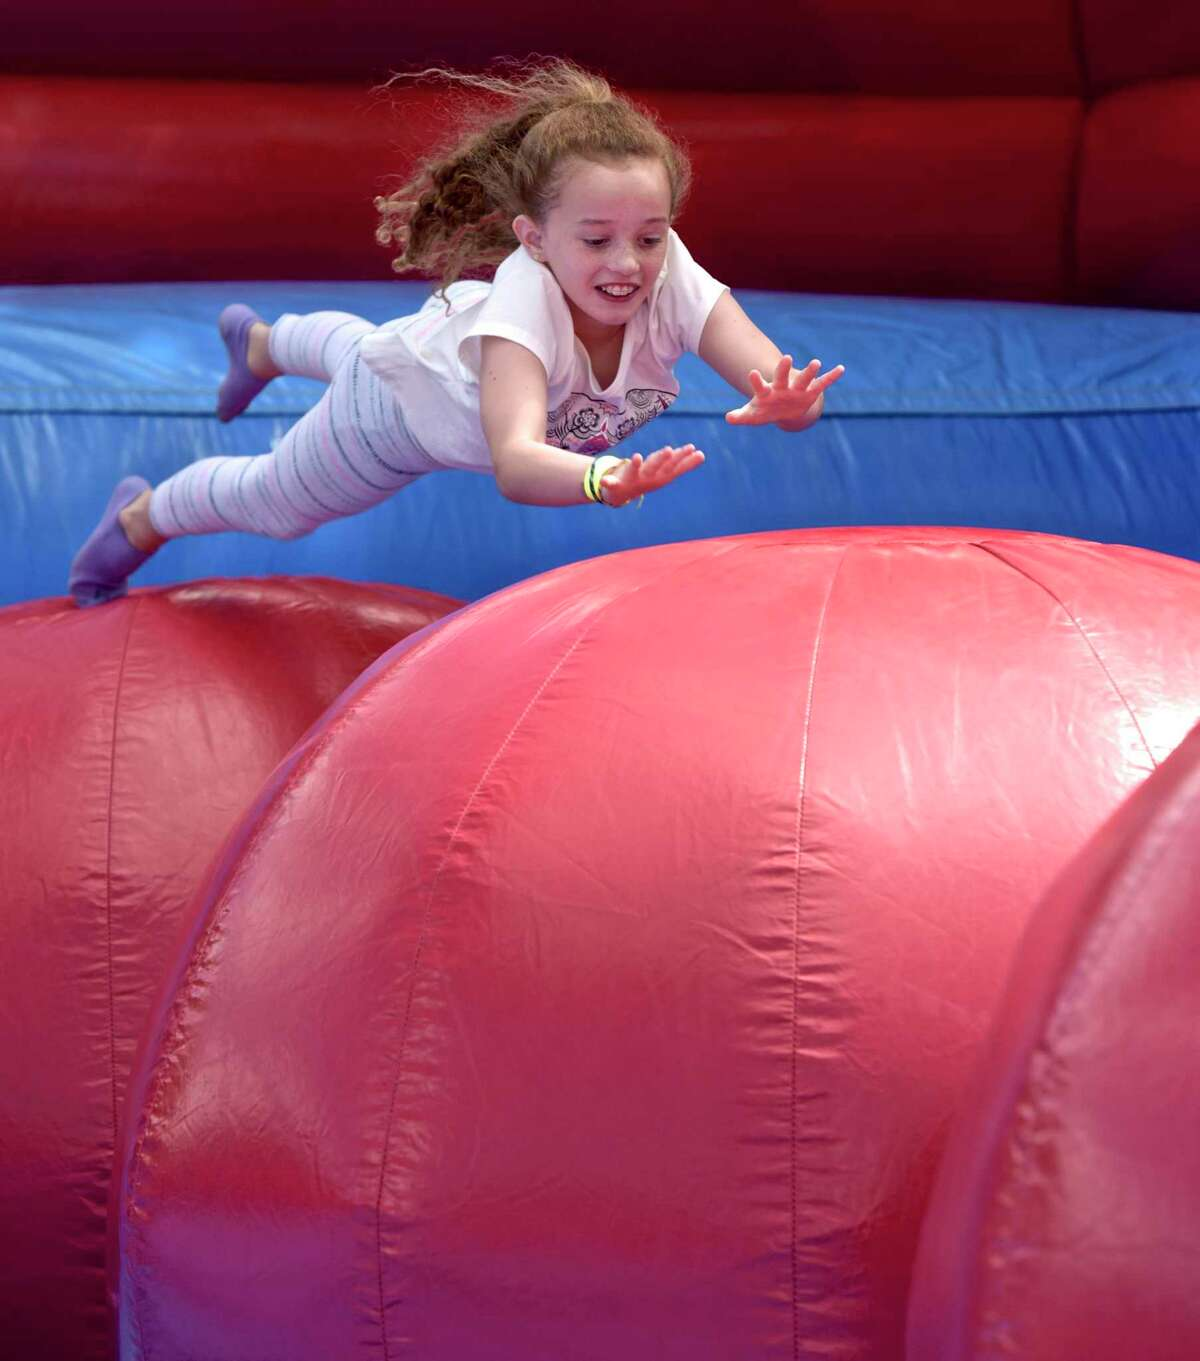 """Mia Johnston, 9, of New Fairfield, jumps across inflated ball on the """"Leaps & Bounds"""" at the Scotty Fund Bethel Town Picnic on Saturday, September 9, 2017, on the Bethel Conn municipal center front lawn."""